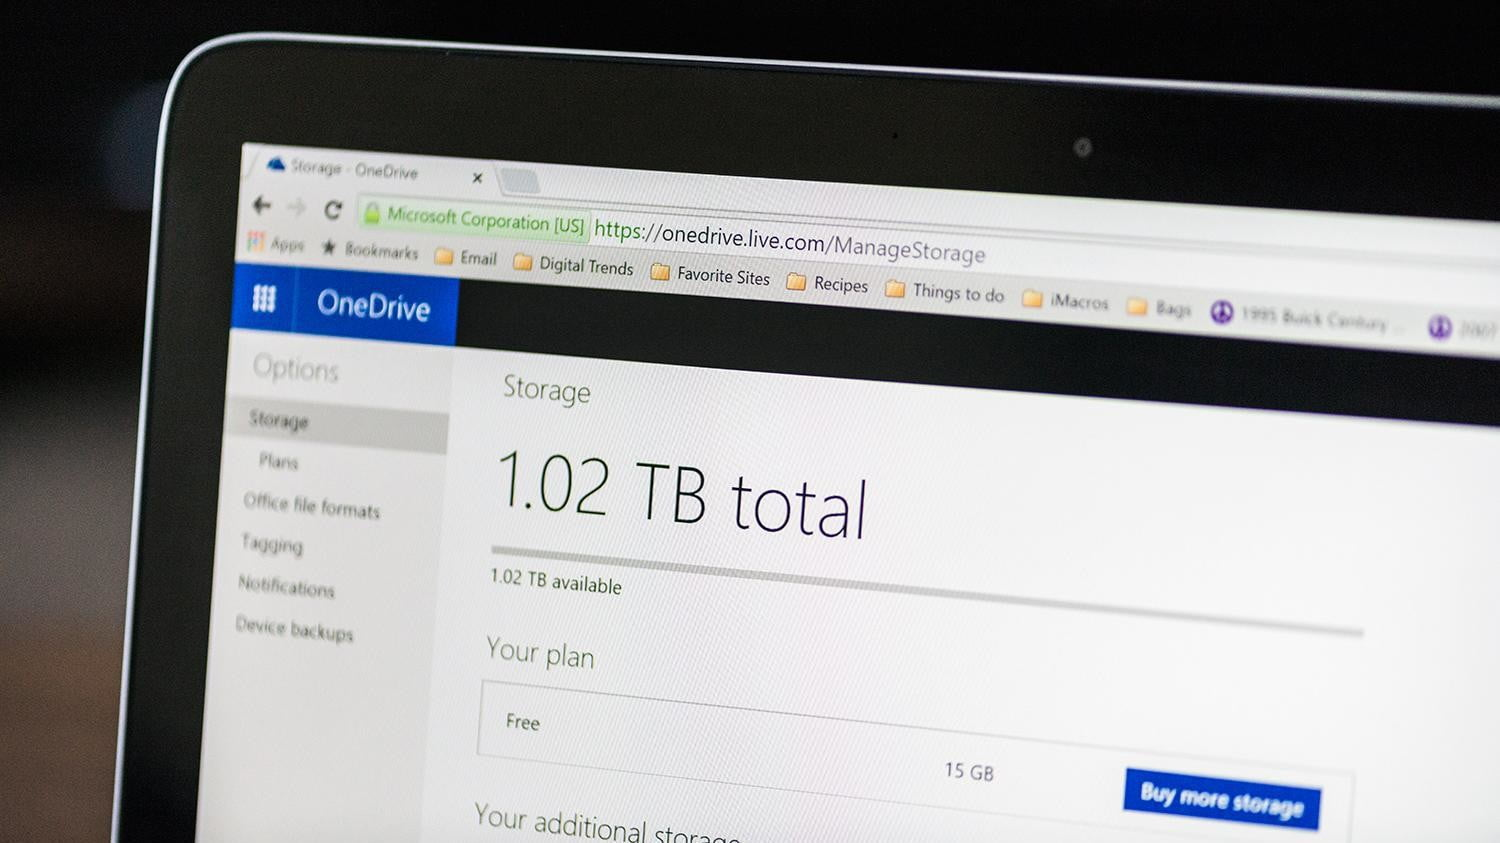 Sharing Files And Folders In OneDrive Made Easy | Digital Trends